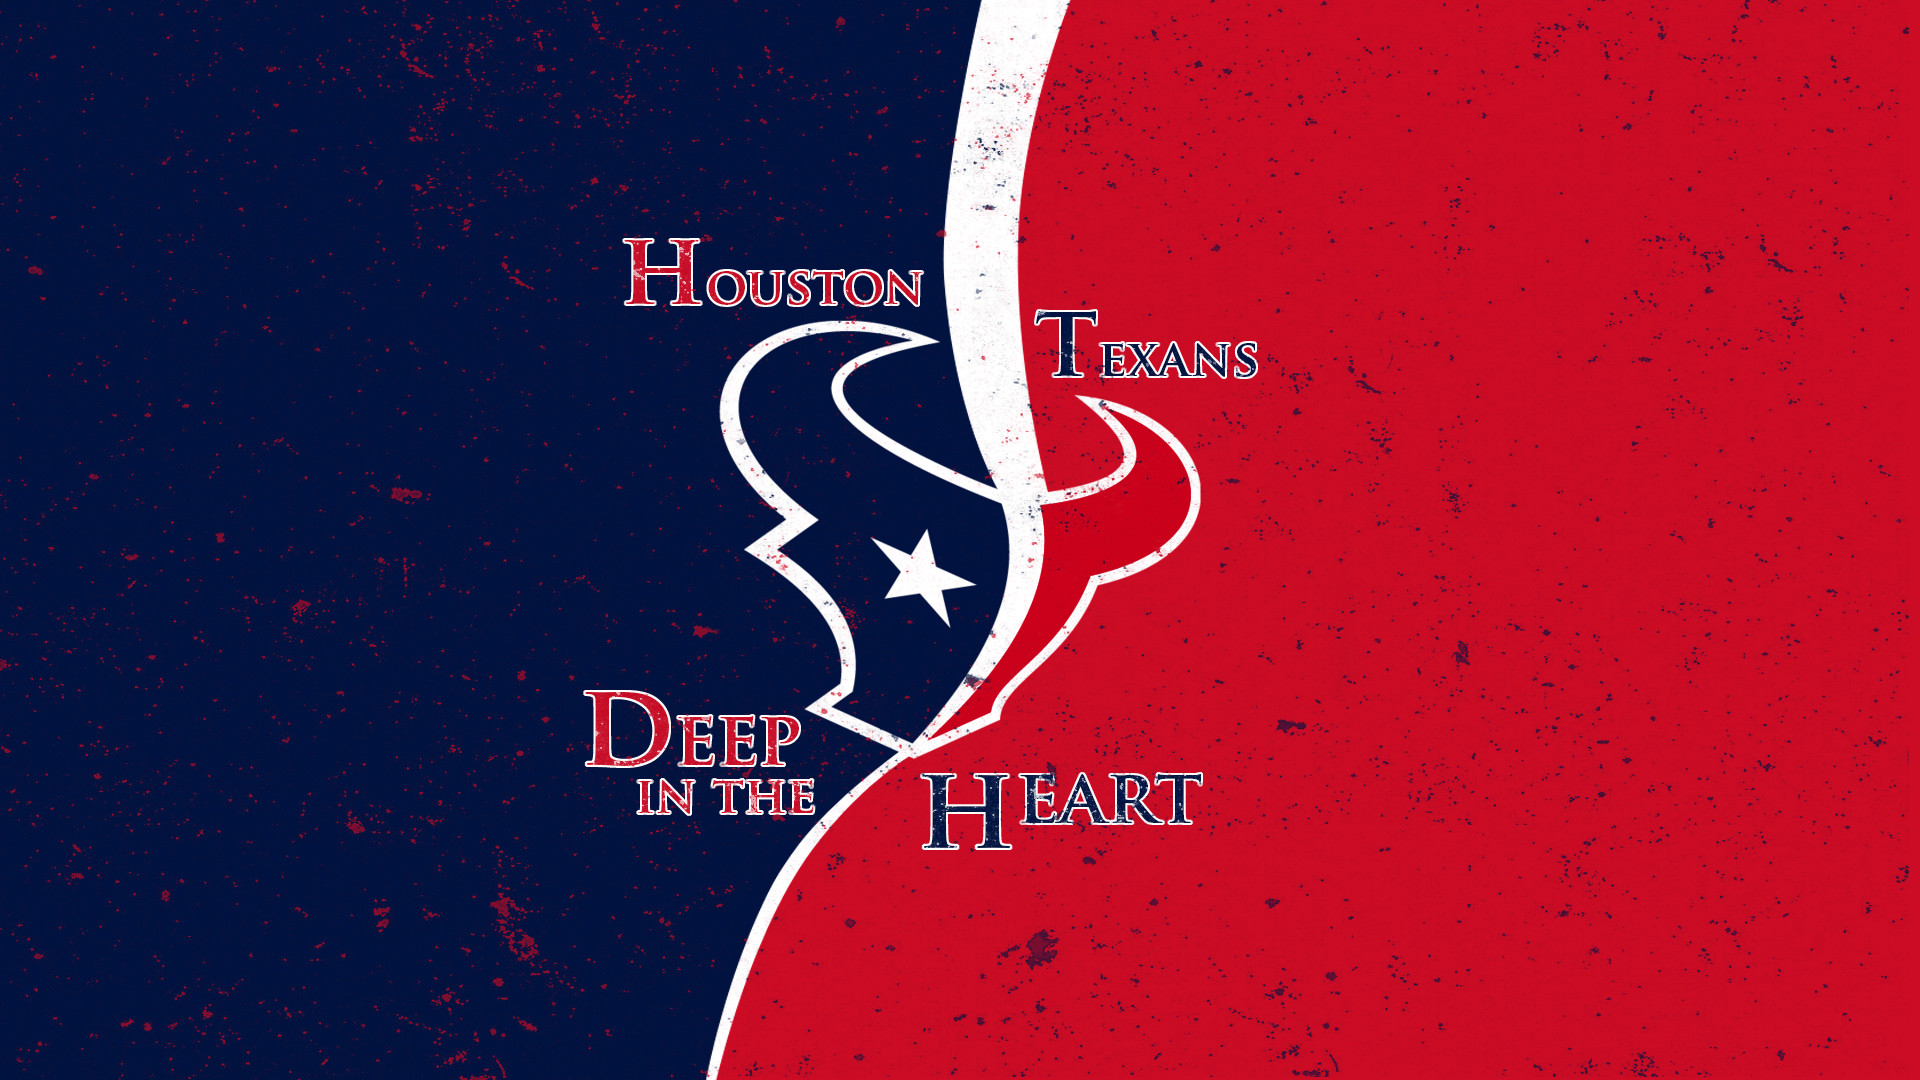 HOUSTON TEXANS nfl football js wallpaper 1920x1080 156224 1920x1080